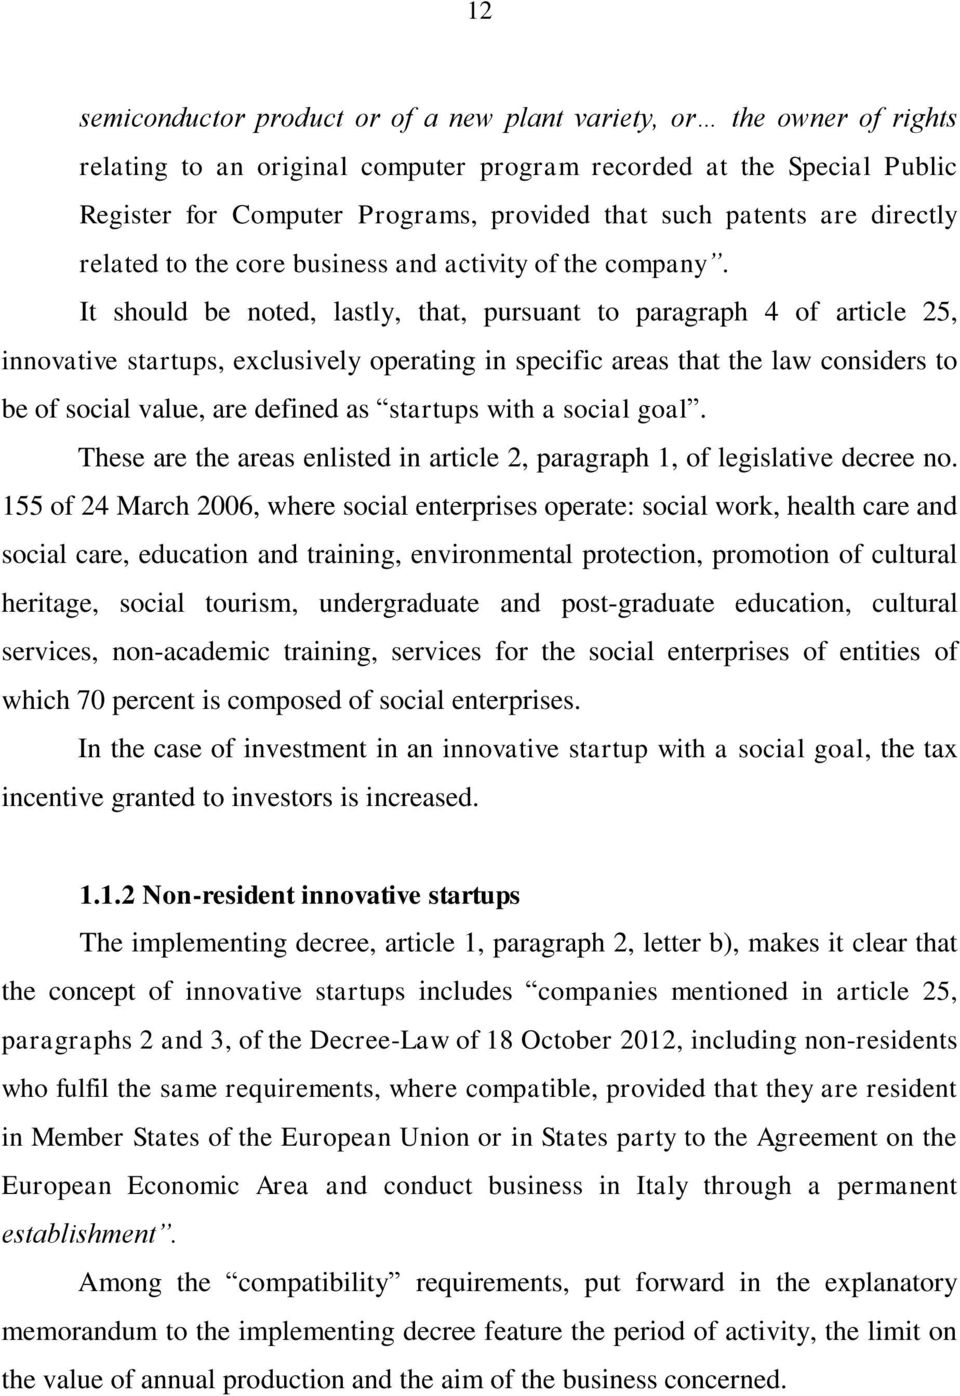 It should be noted, lastly, that, pursuant to paragraph 4 of article 25, innovative startups, exclusively operating in specific areas that the law considers to be of social value, are defined as